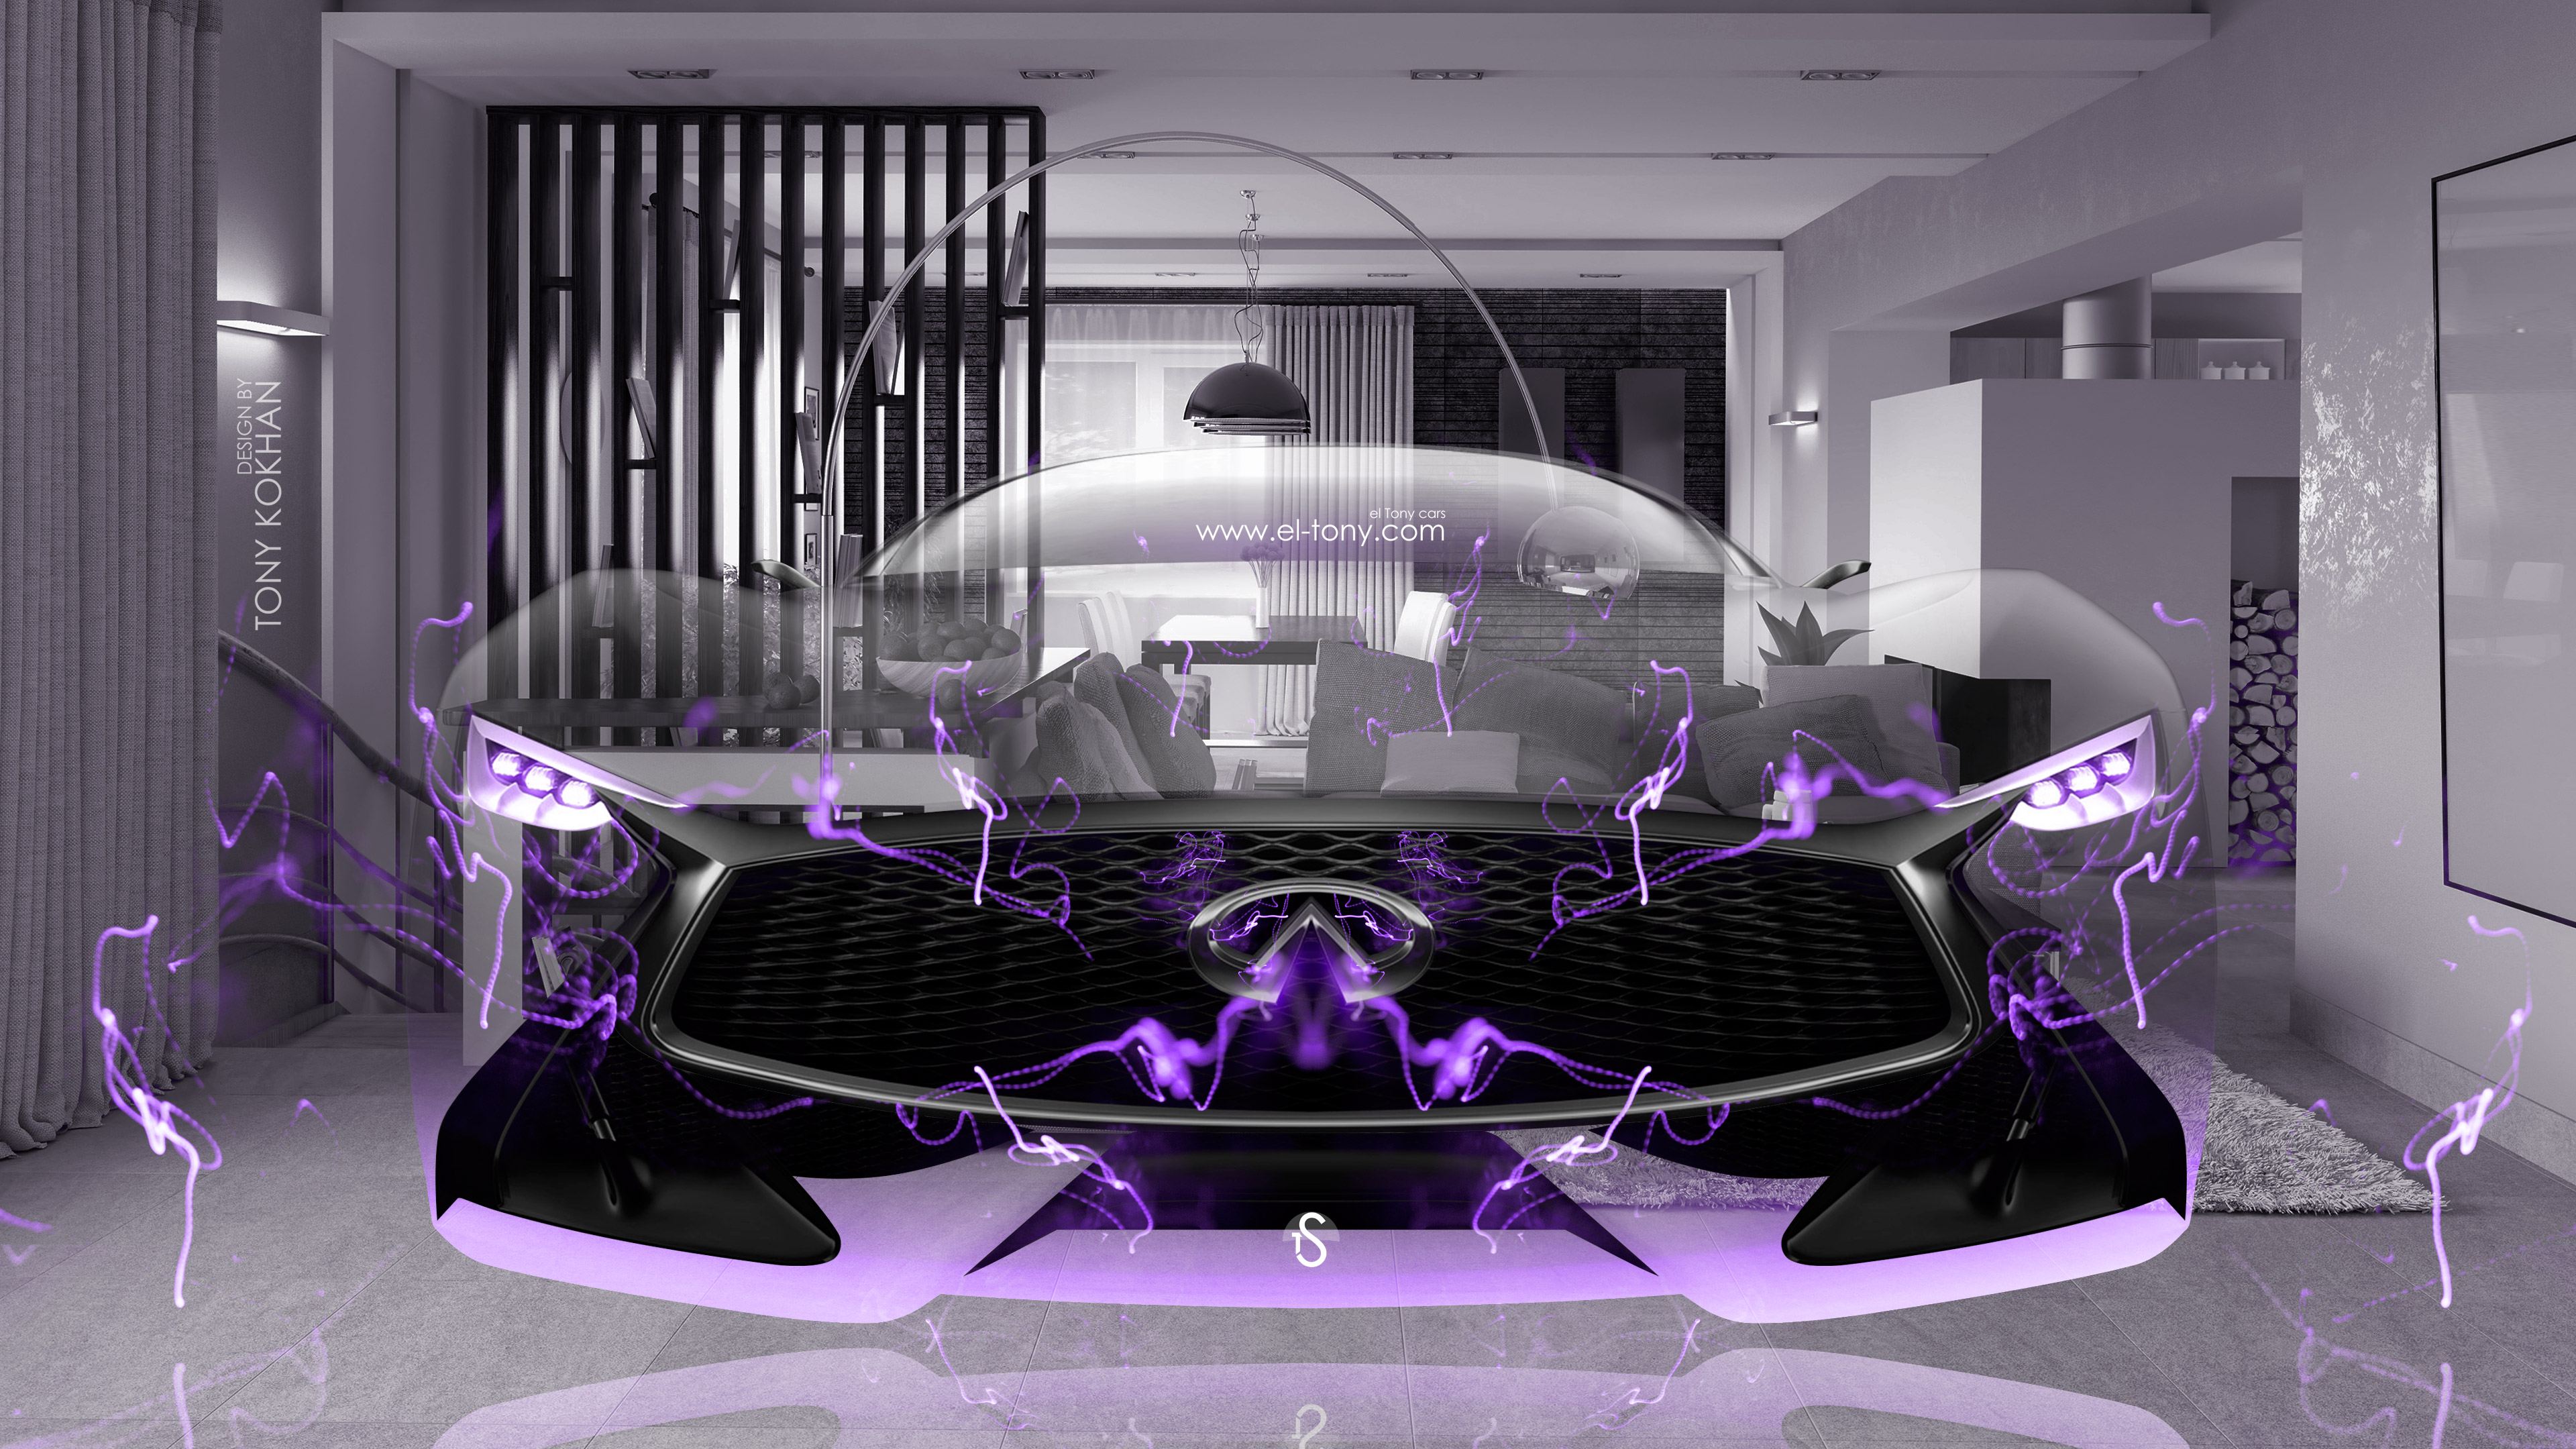 Infiniti-Vision-Gran-Turismo-Front-Fantasy-Fly-Home-Energy-Car-2015-Violet-Neon-Effects-4K-Wallpapers-design-by-Tony-Kokhan-www.el-tony.com-image